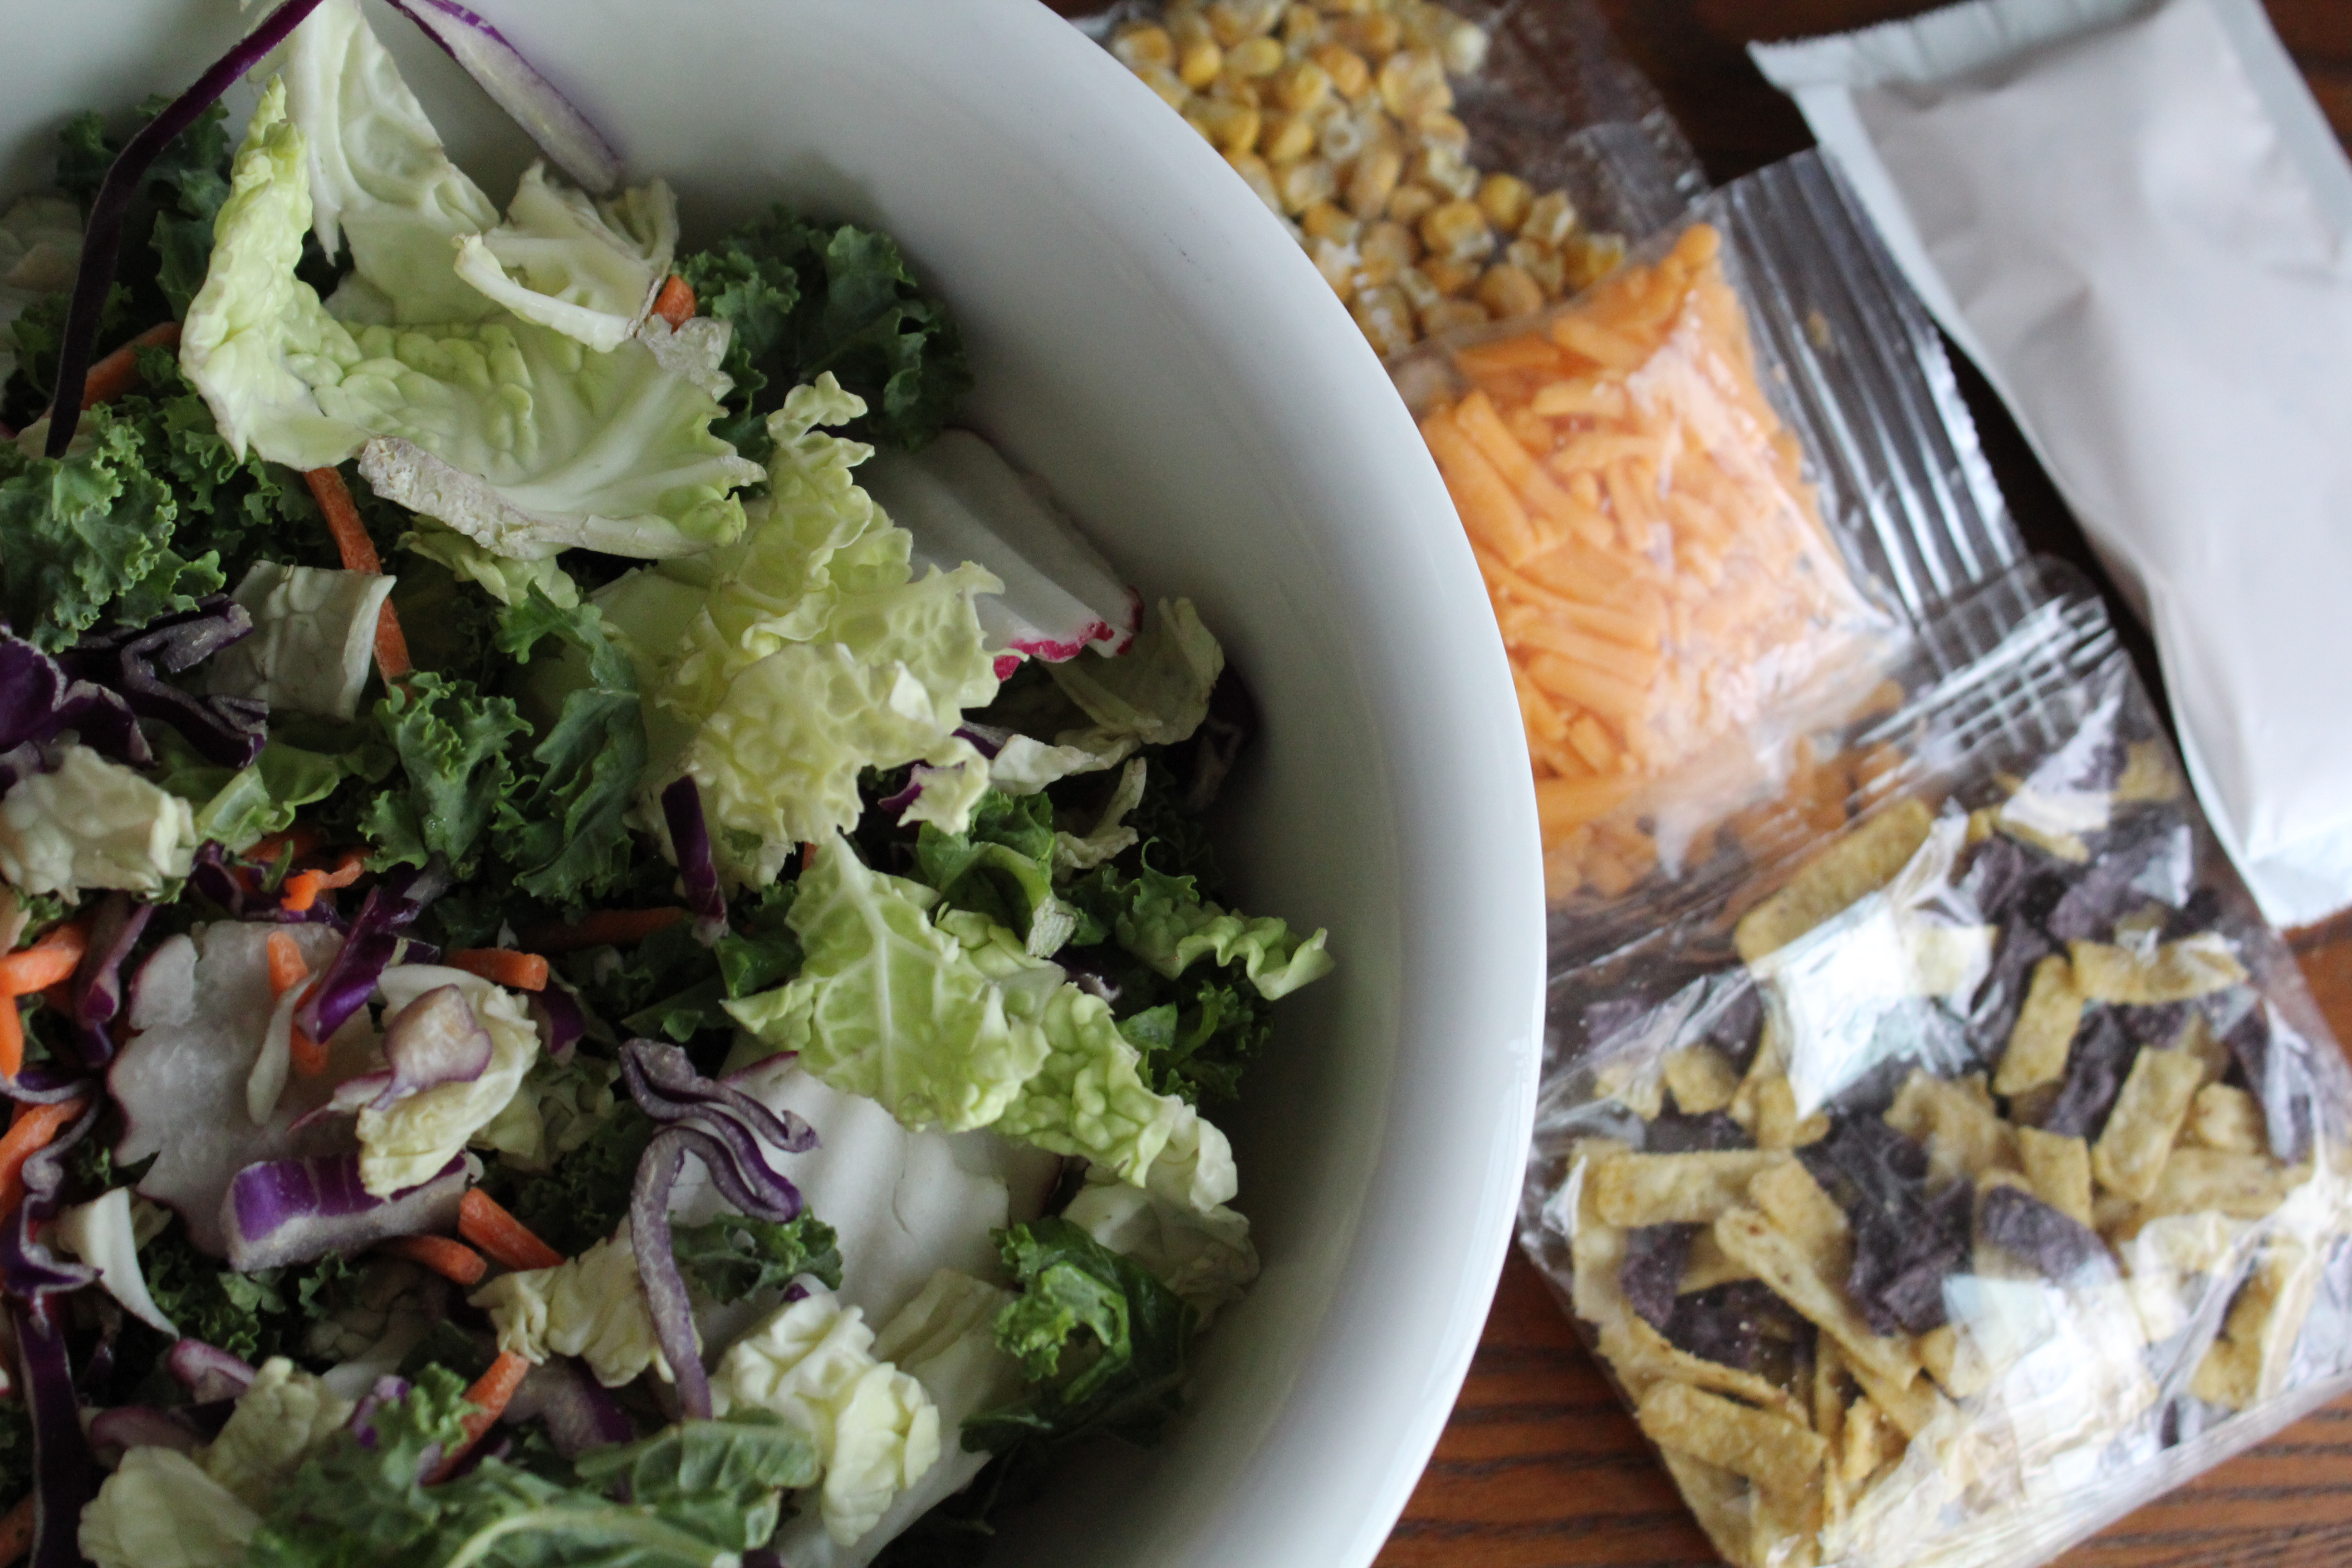 eat smart Eat smart, guadalupe, california 574k likes eat smart fresh-cut vegetables and salads are the fast, flavorful way to eat healthy every day.